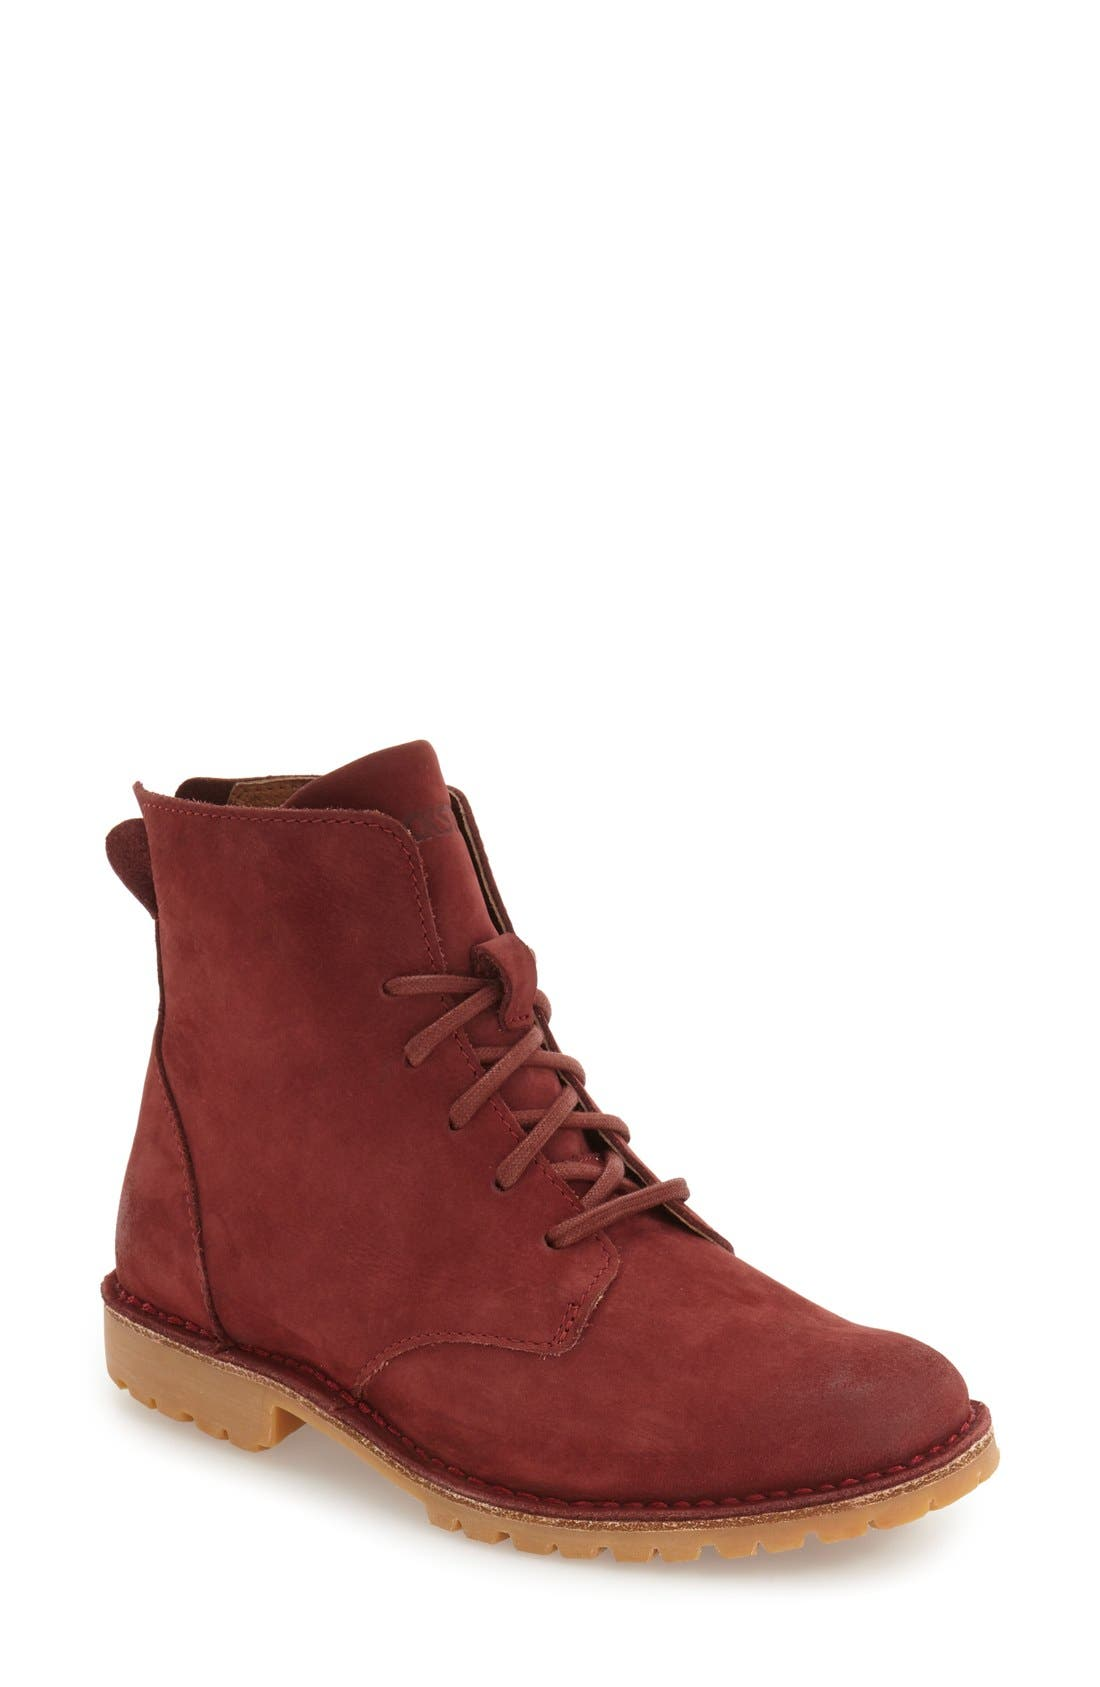 BLACKSTONE 'KL67' Lace-Up Boot, Main, color, CORDOVAN NUBUCK LEATHER